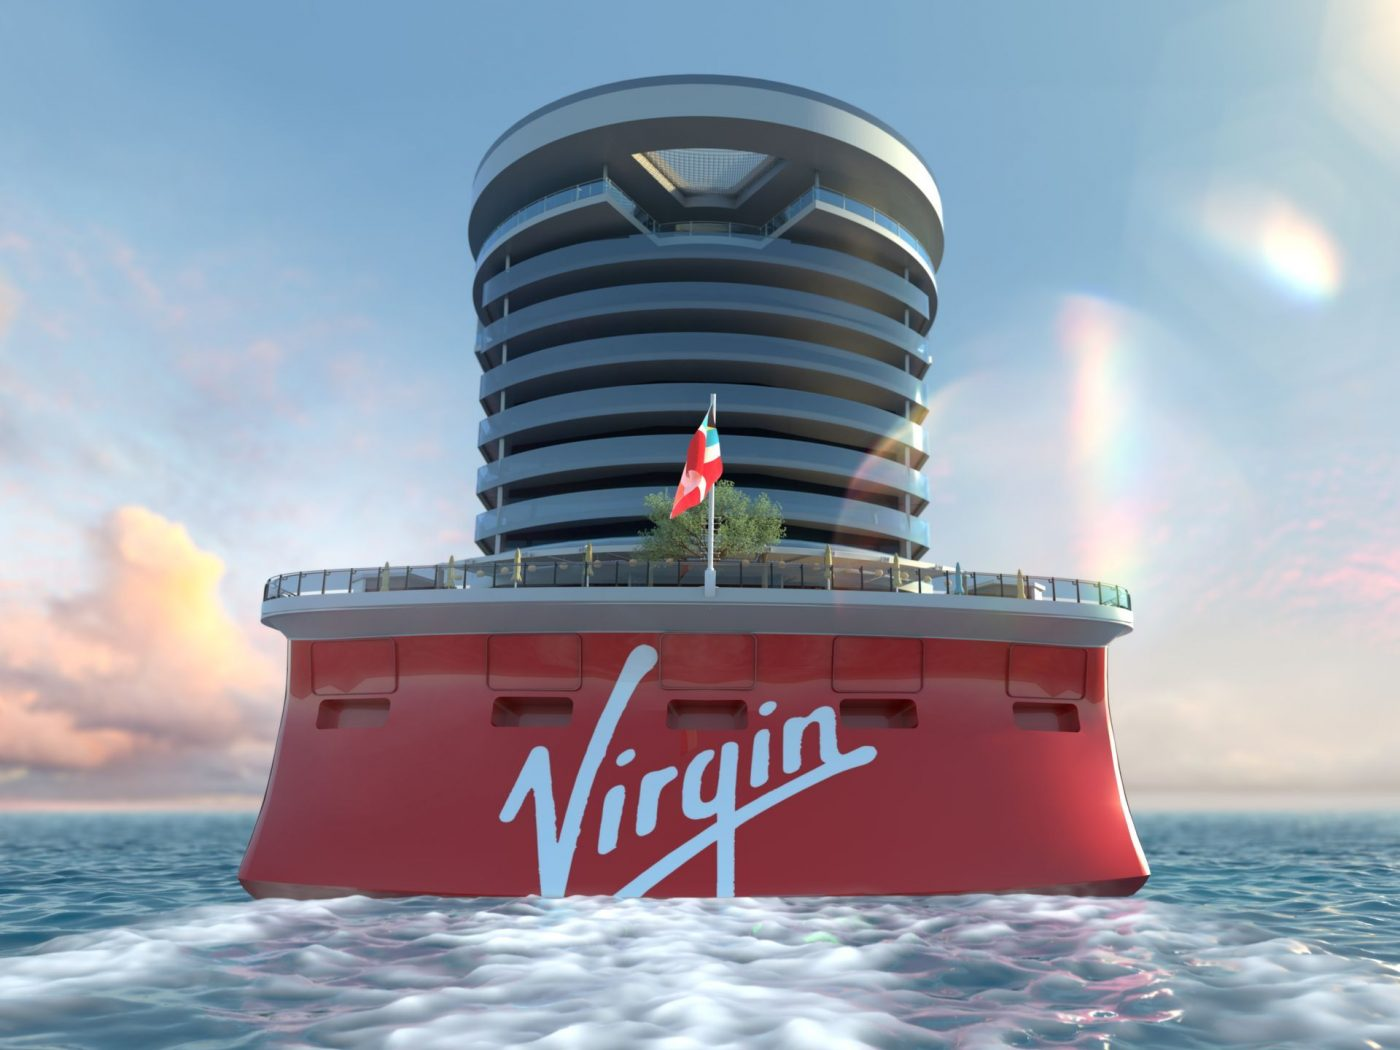 Sir Richard Branson revela o primeiro navio da Virgin Voyages